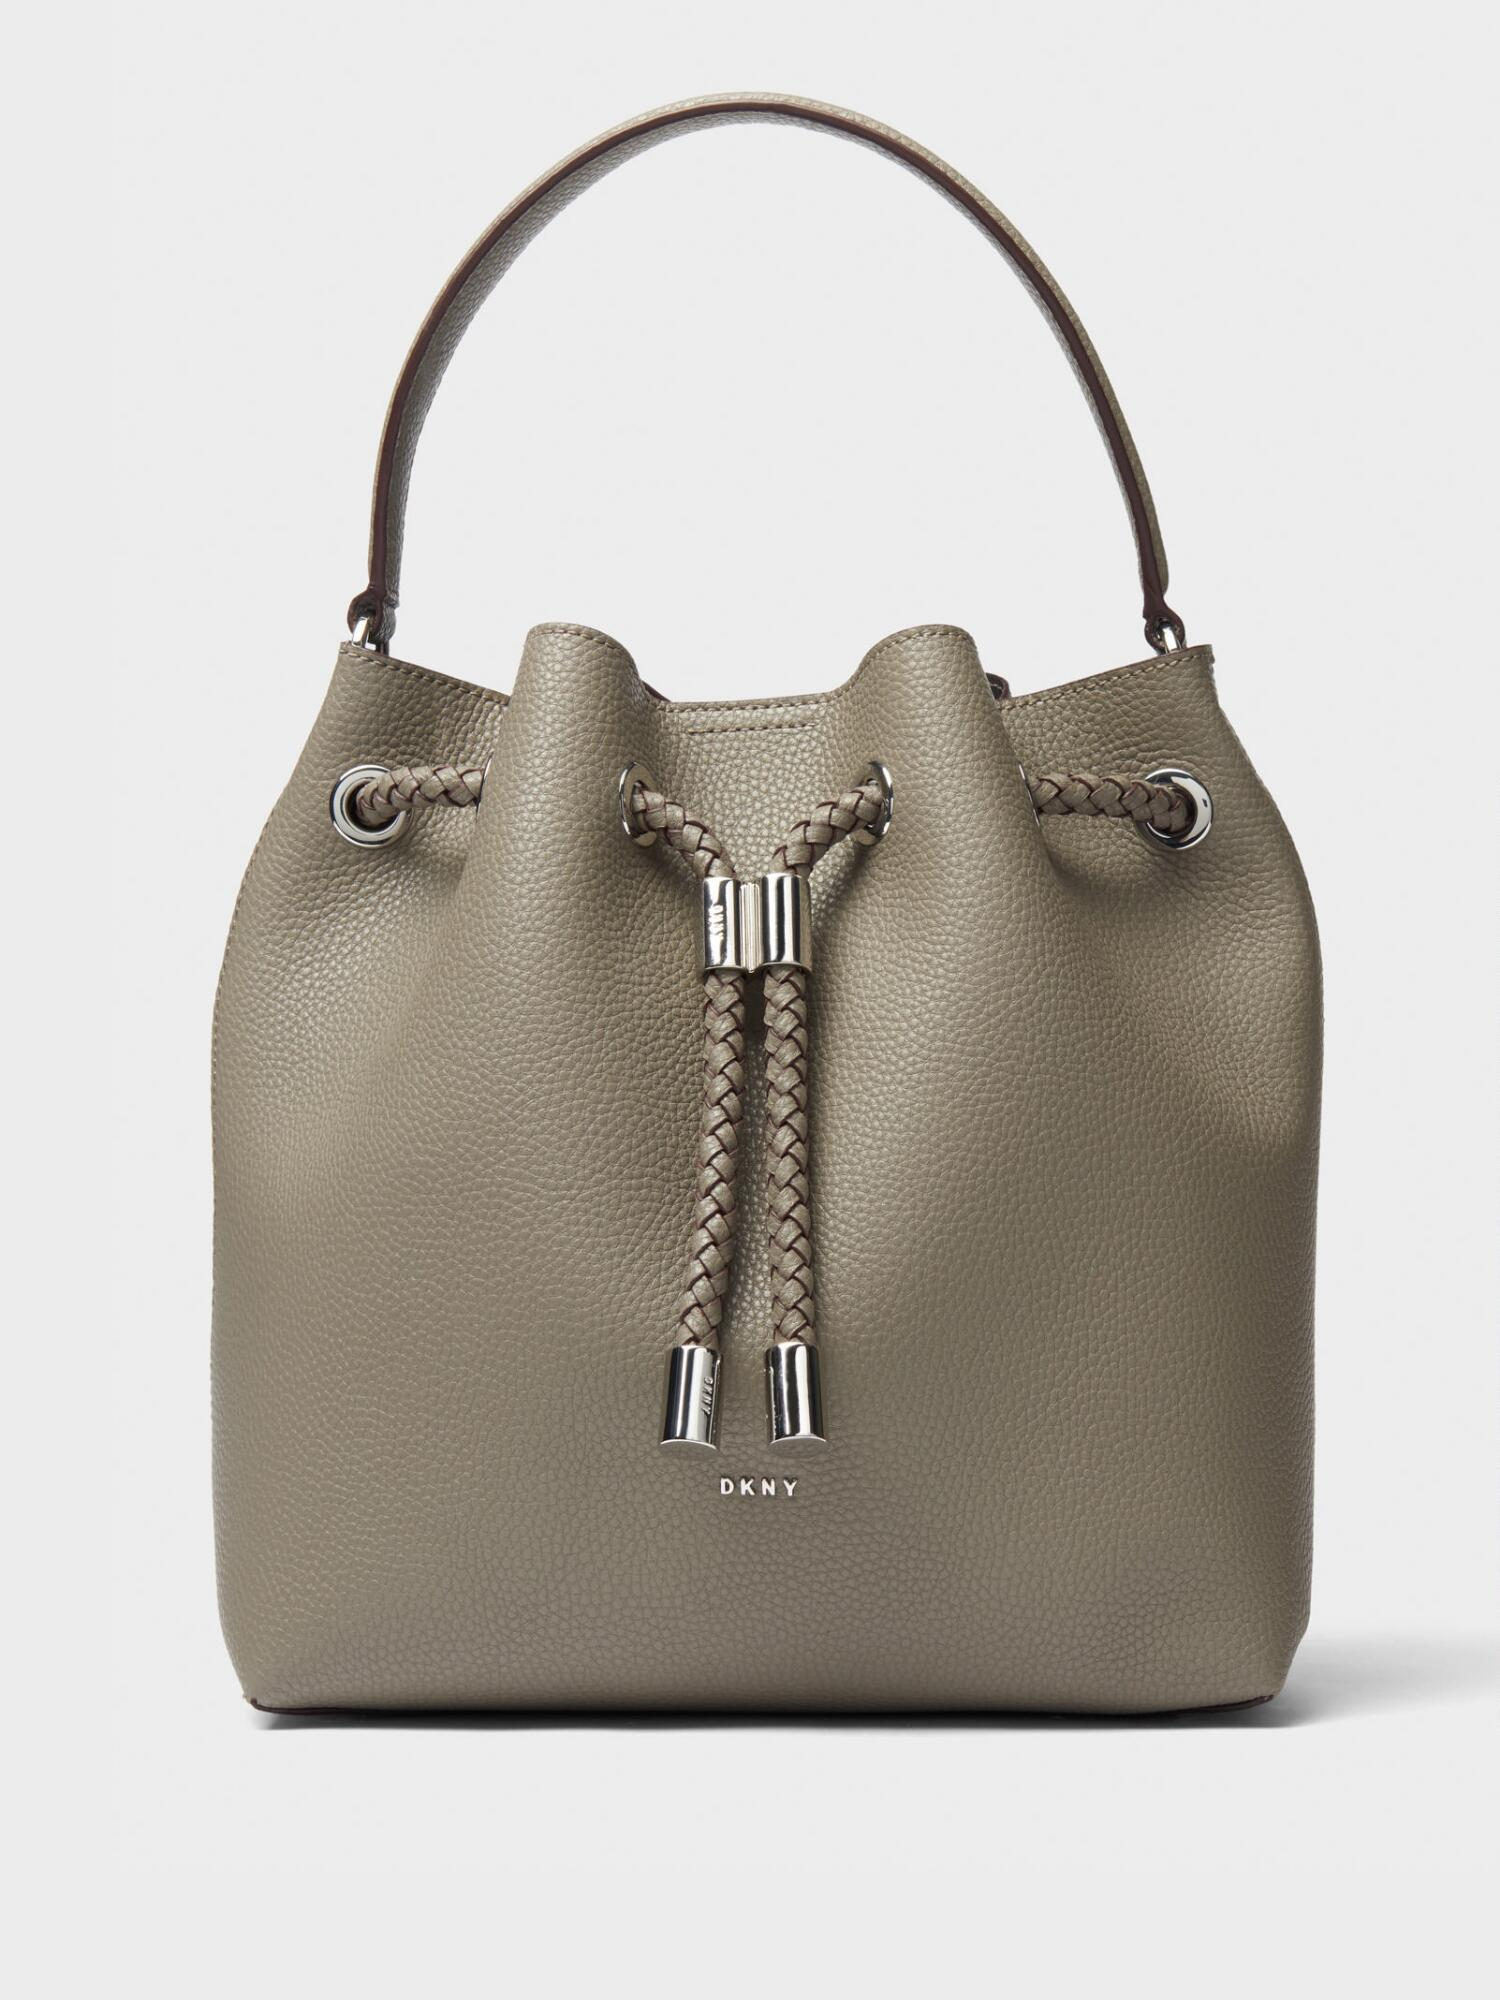 19e84a7f79 Donna Karan Alice Large Leather Bucket Bag In Clay | ModeSens